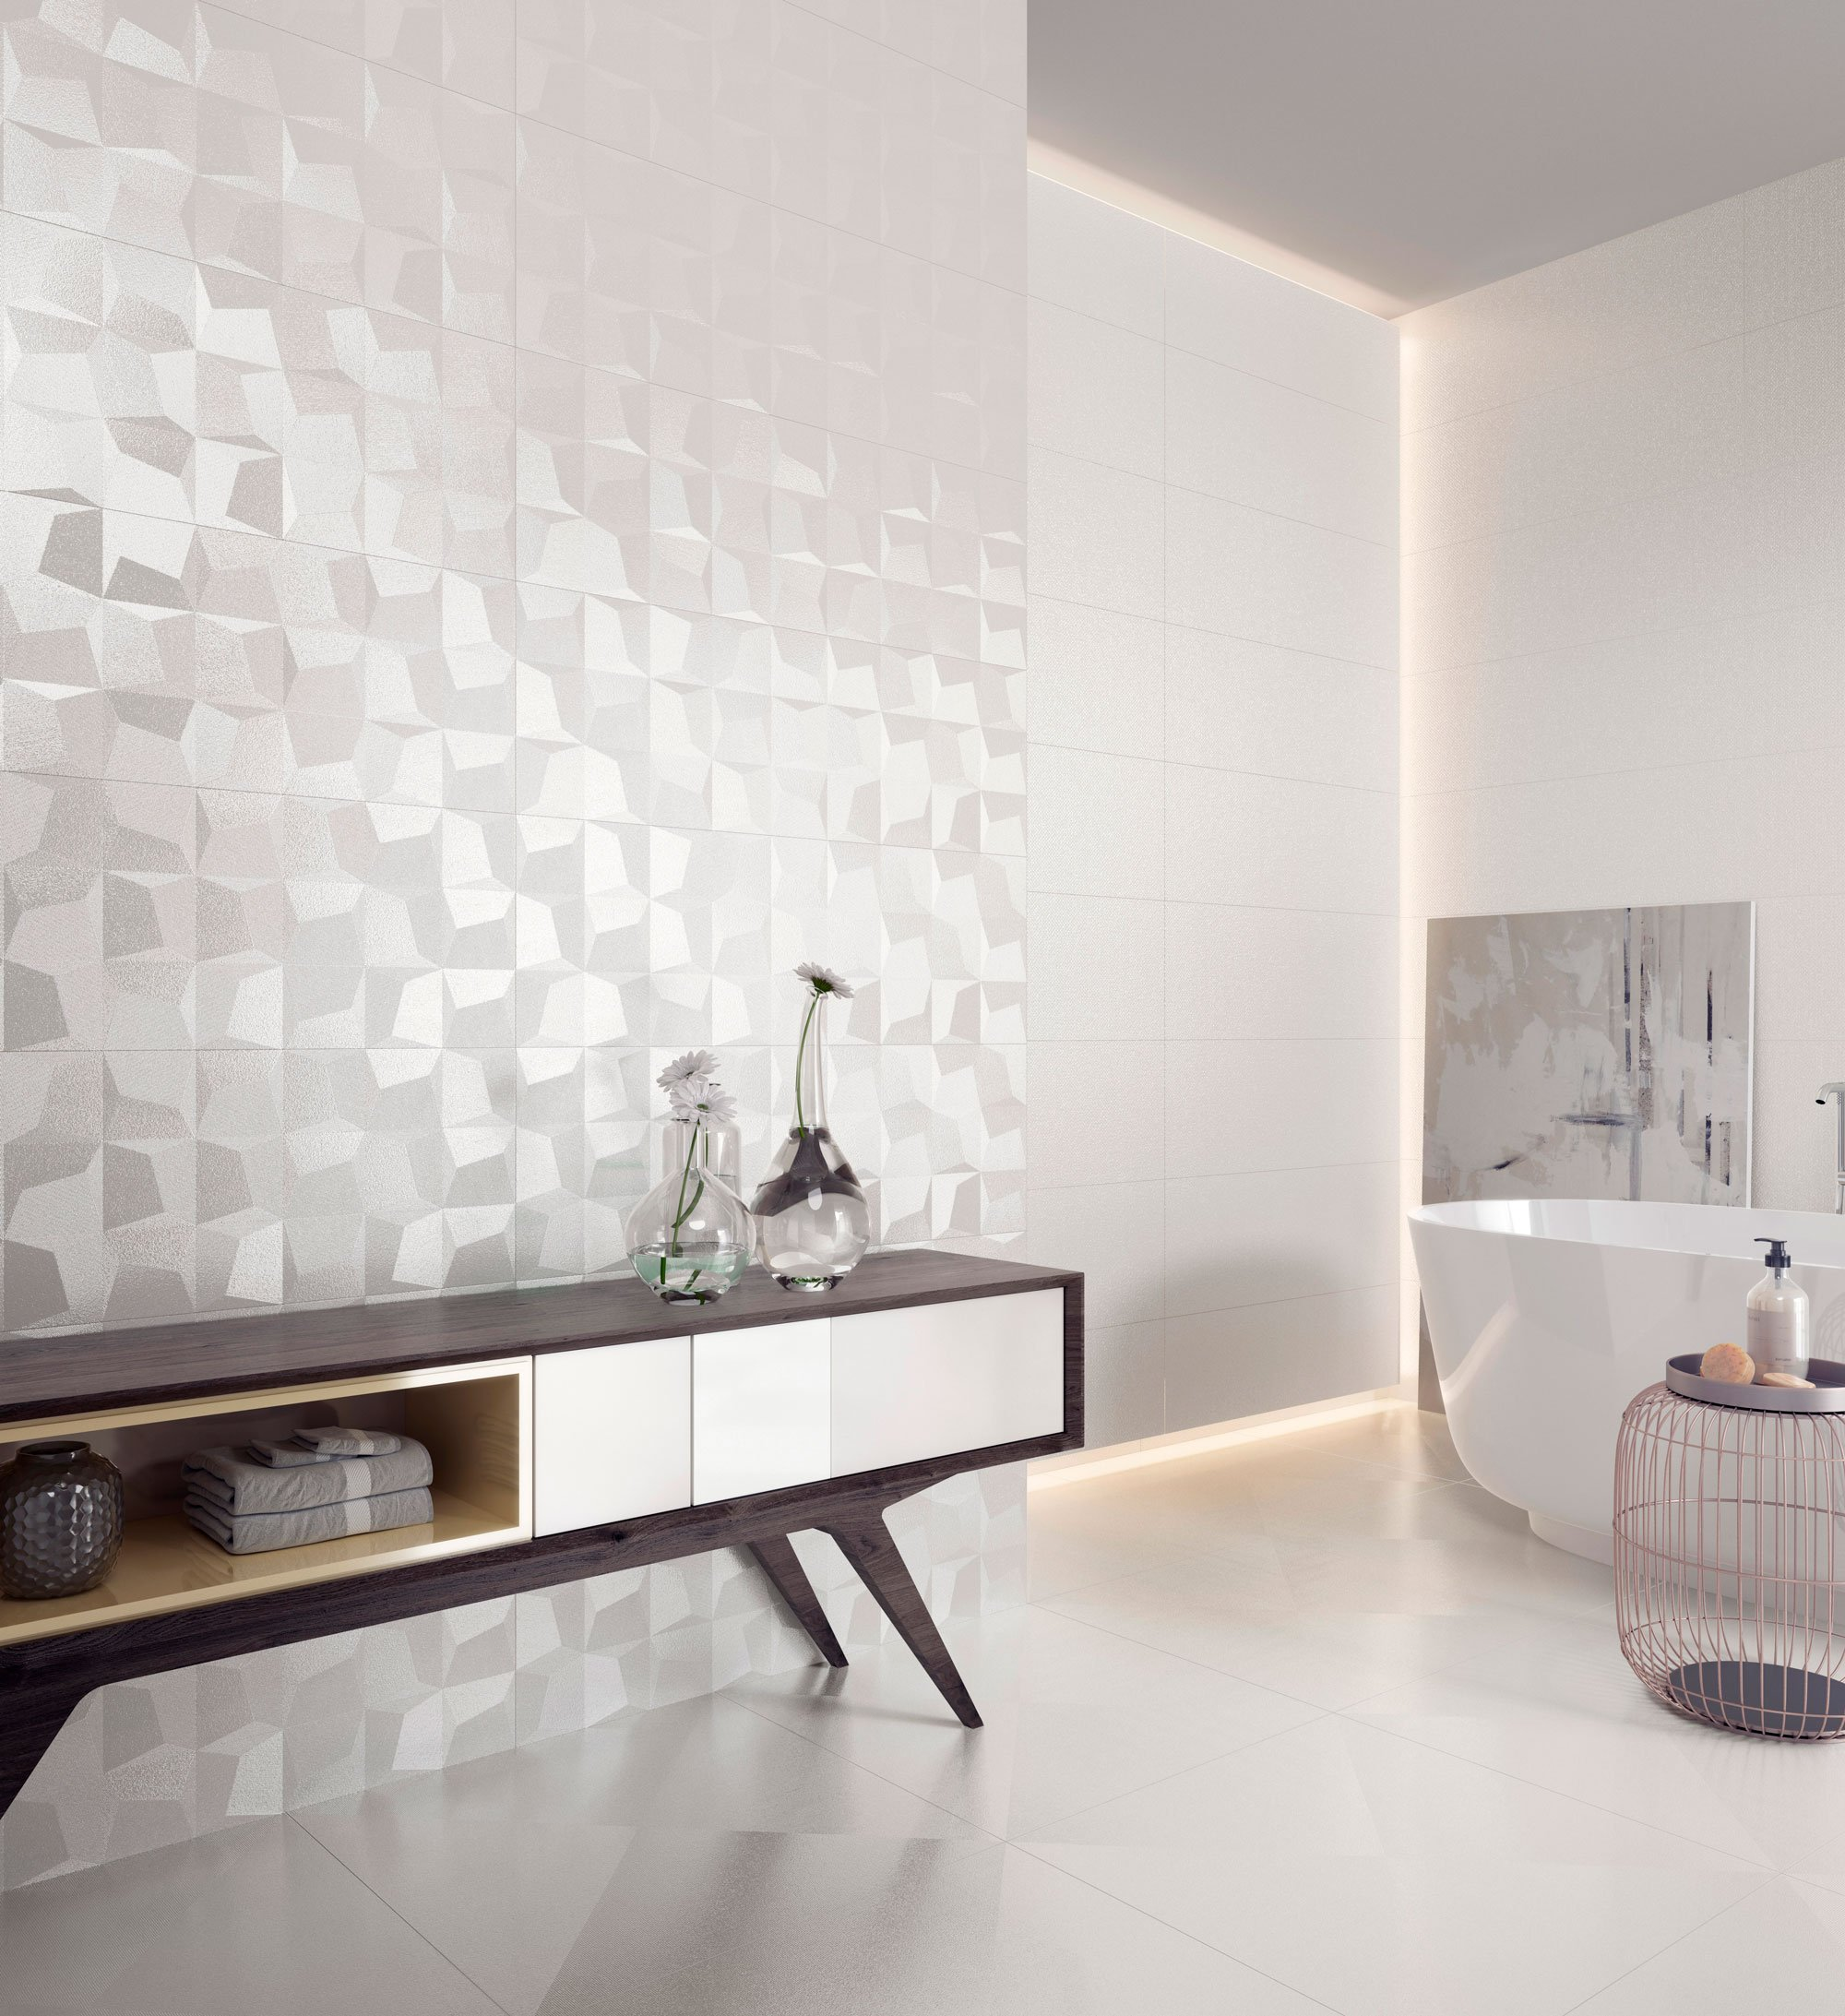 Extensive product line, incorporating trends and innovation in tile for both residential and commercial projects.